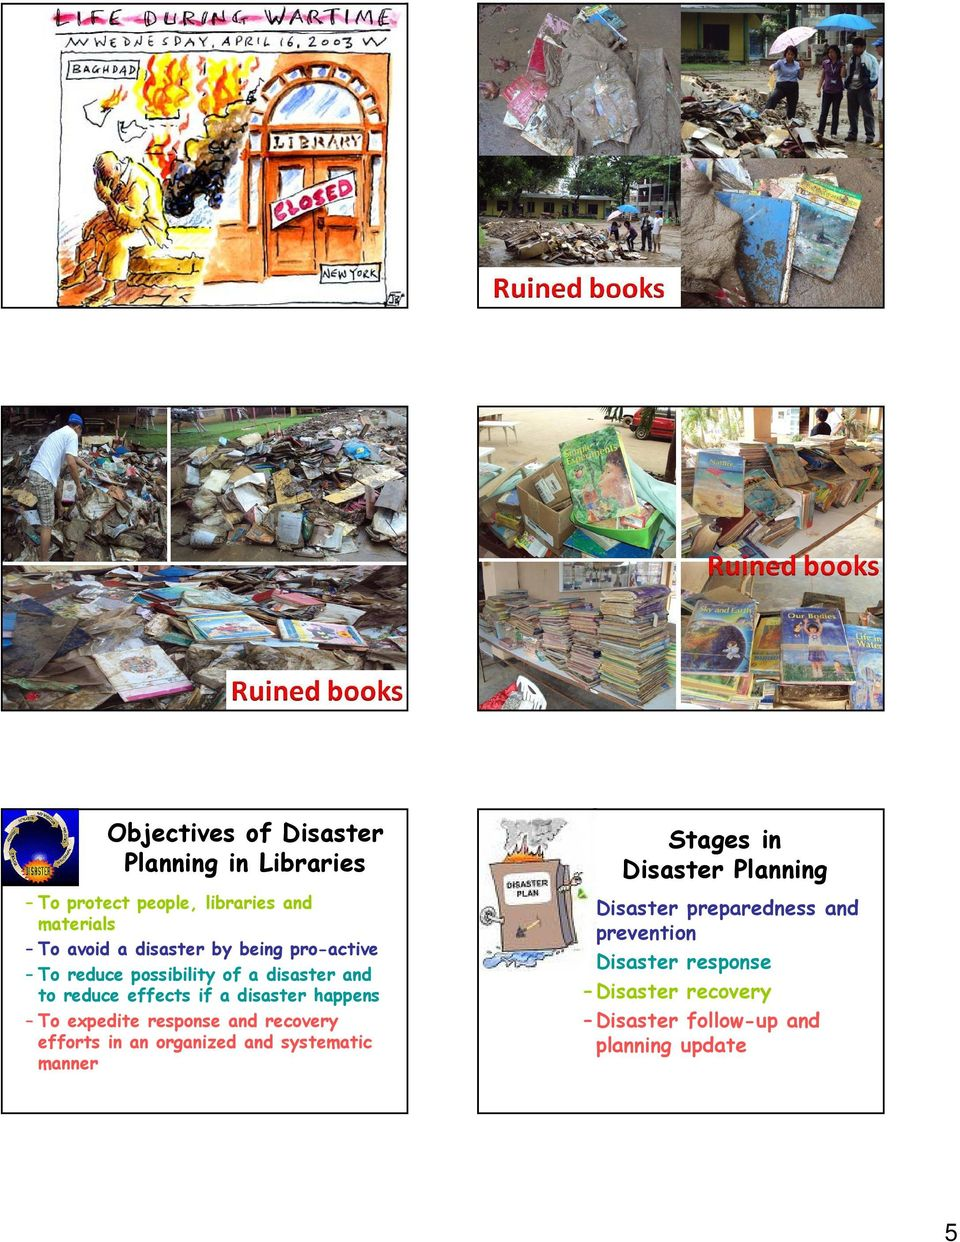 expedite response and recovery efforts in an organized and systematic manner Stages in Disaster Planning